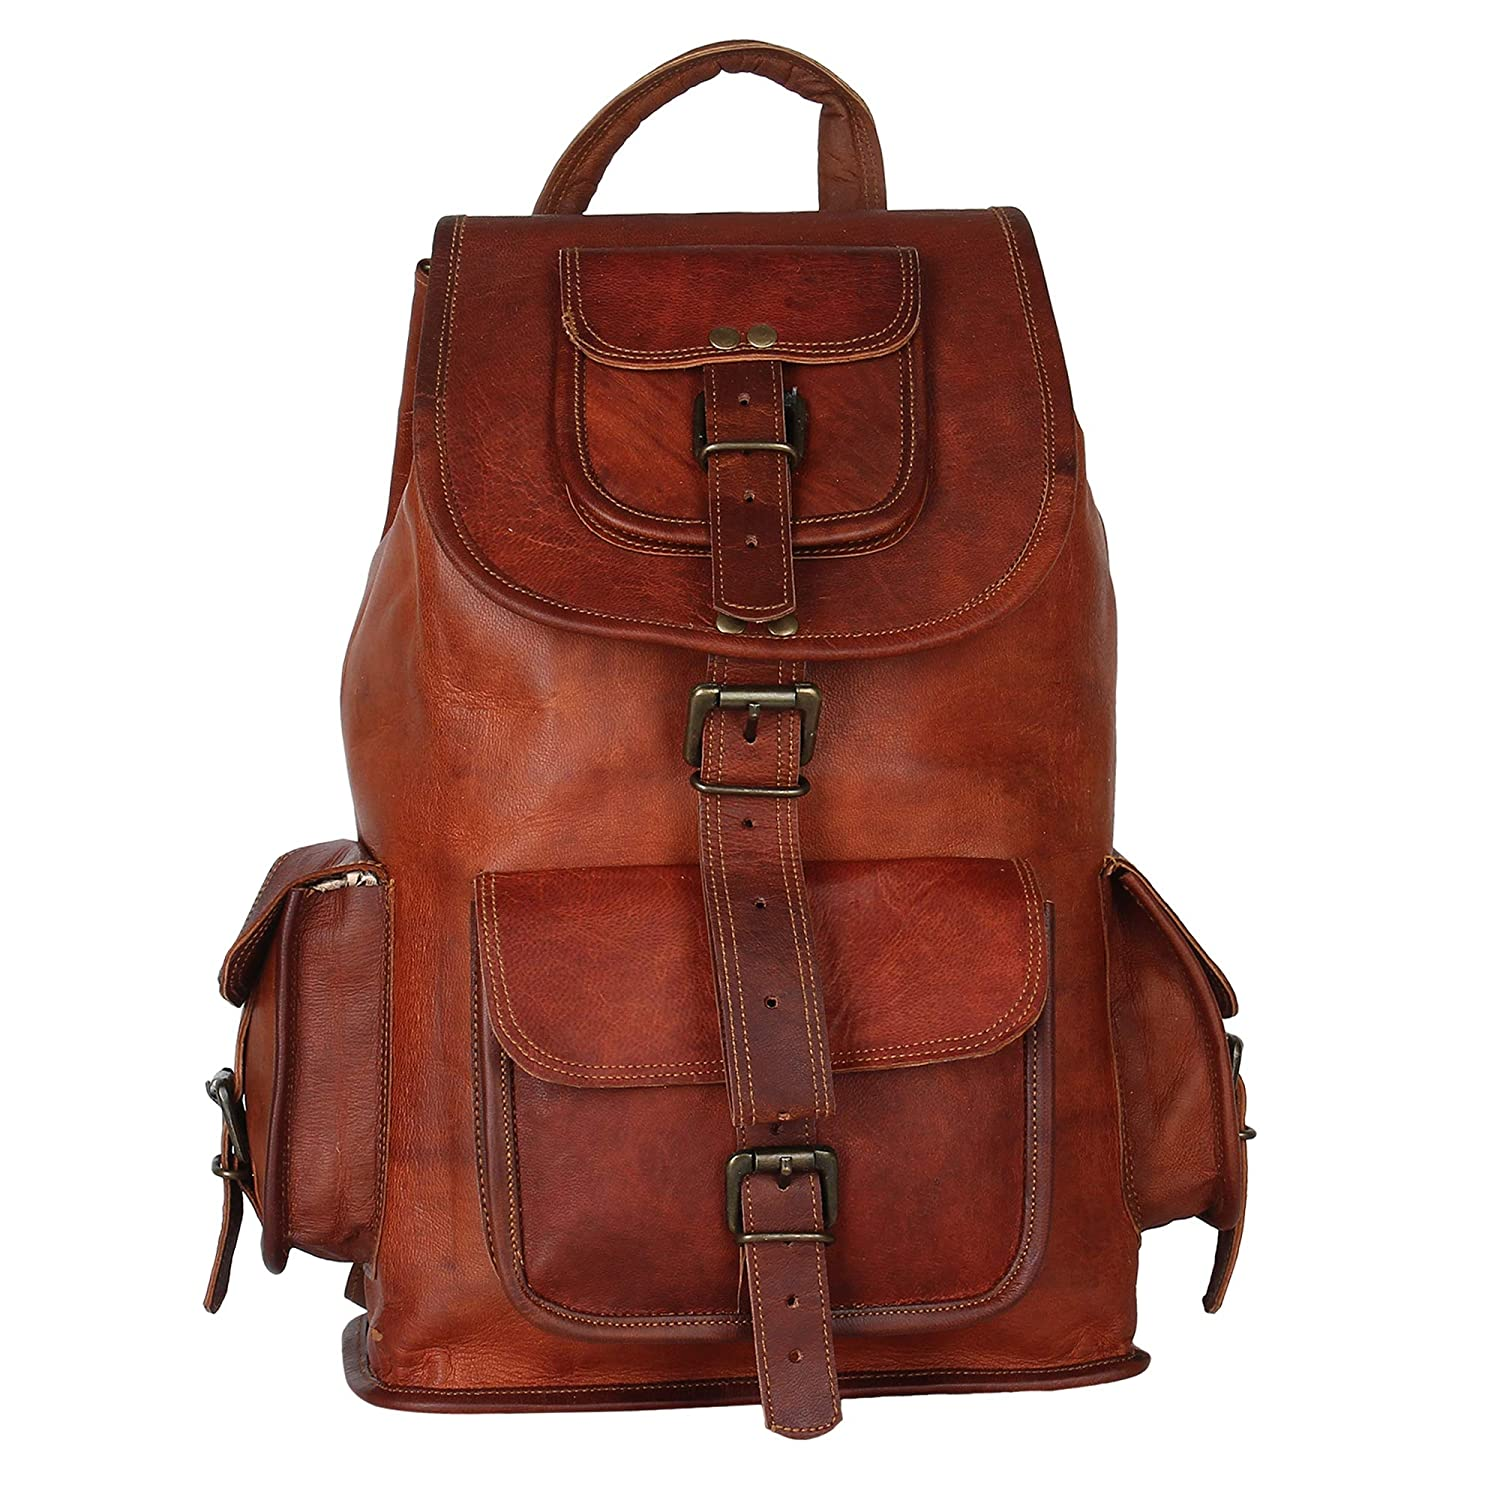 16 Inch,Brown leather backpack CPLEATHER Exclusively Designed Leather Backpack for Men and Women